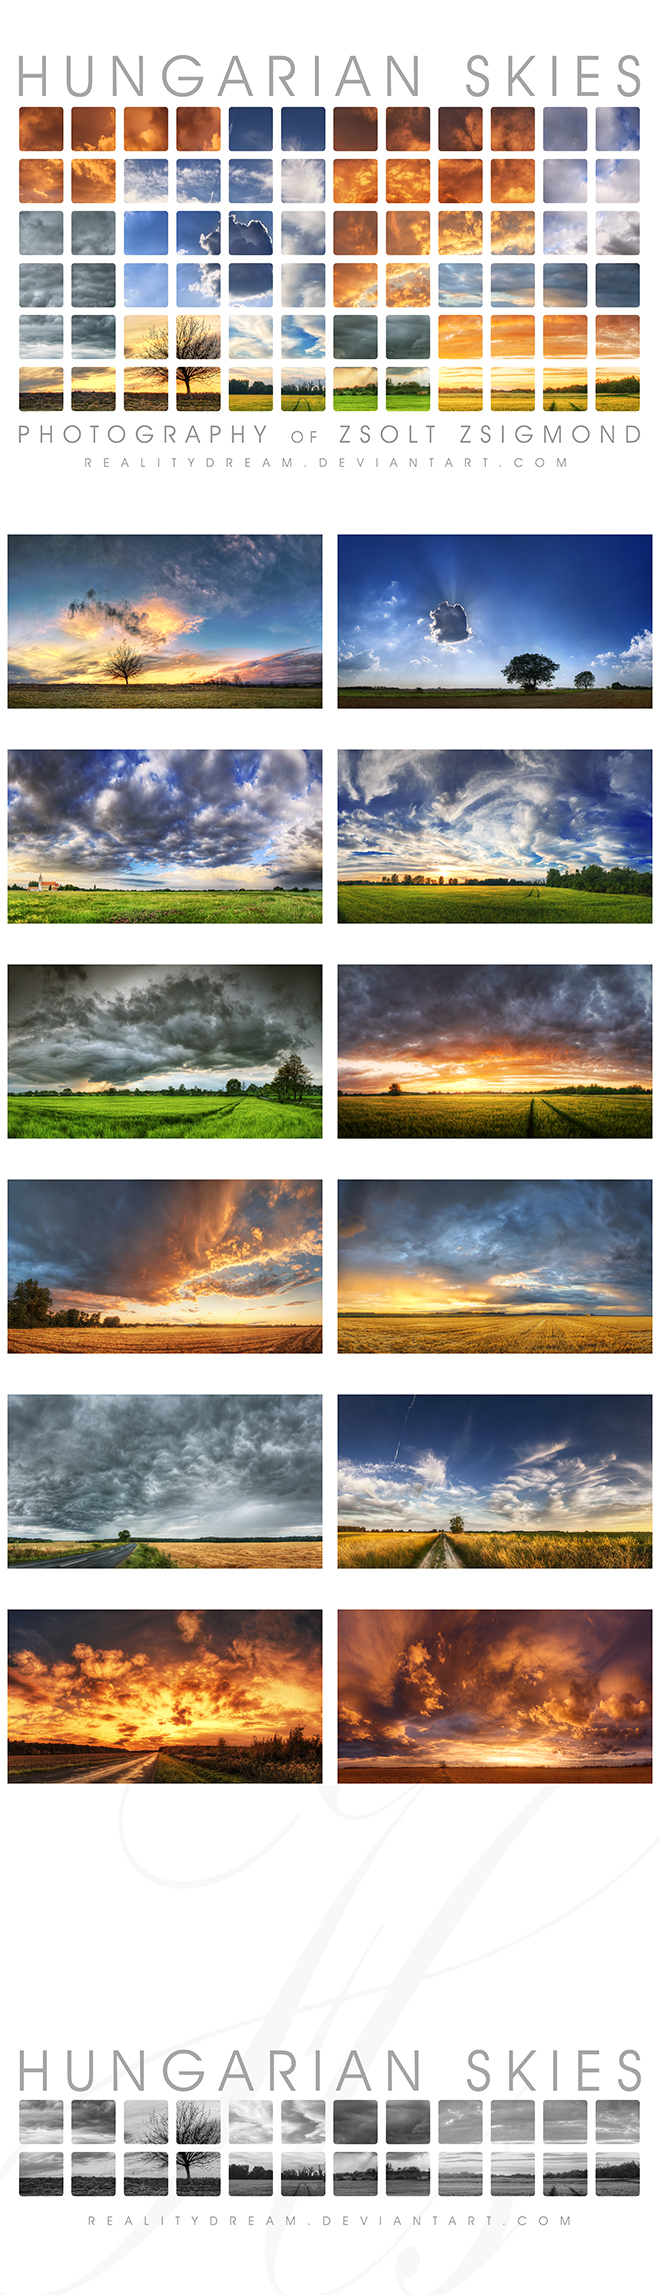 The Hungarian Skies Calendar 2 by realityDream